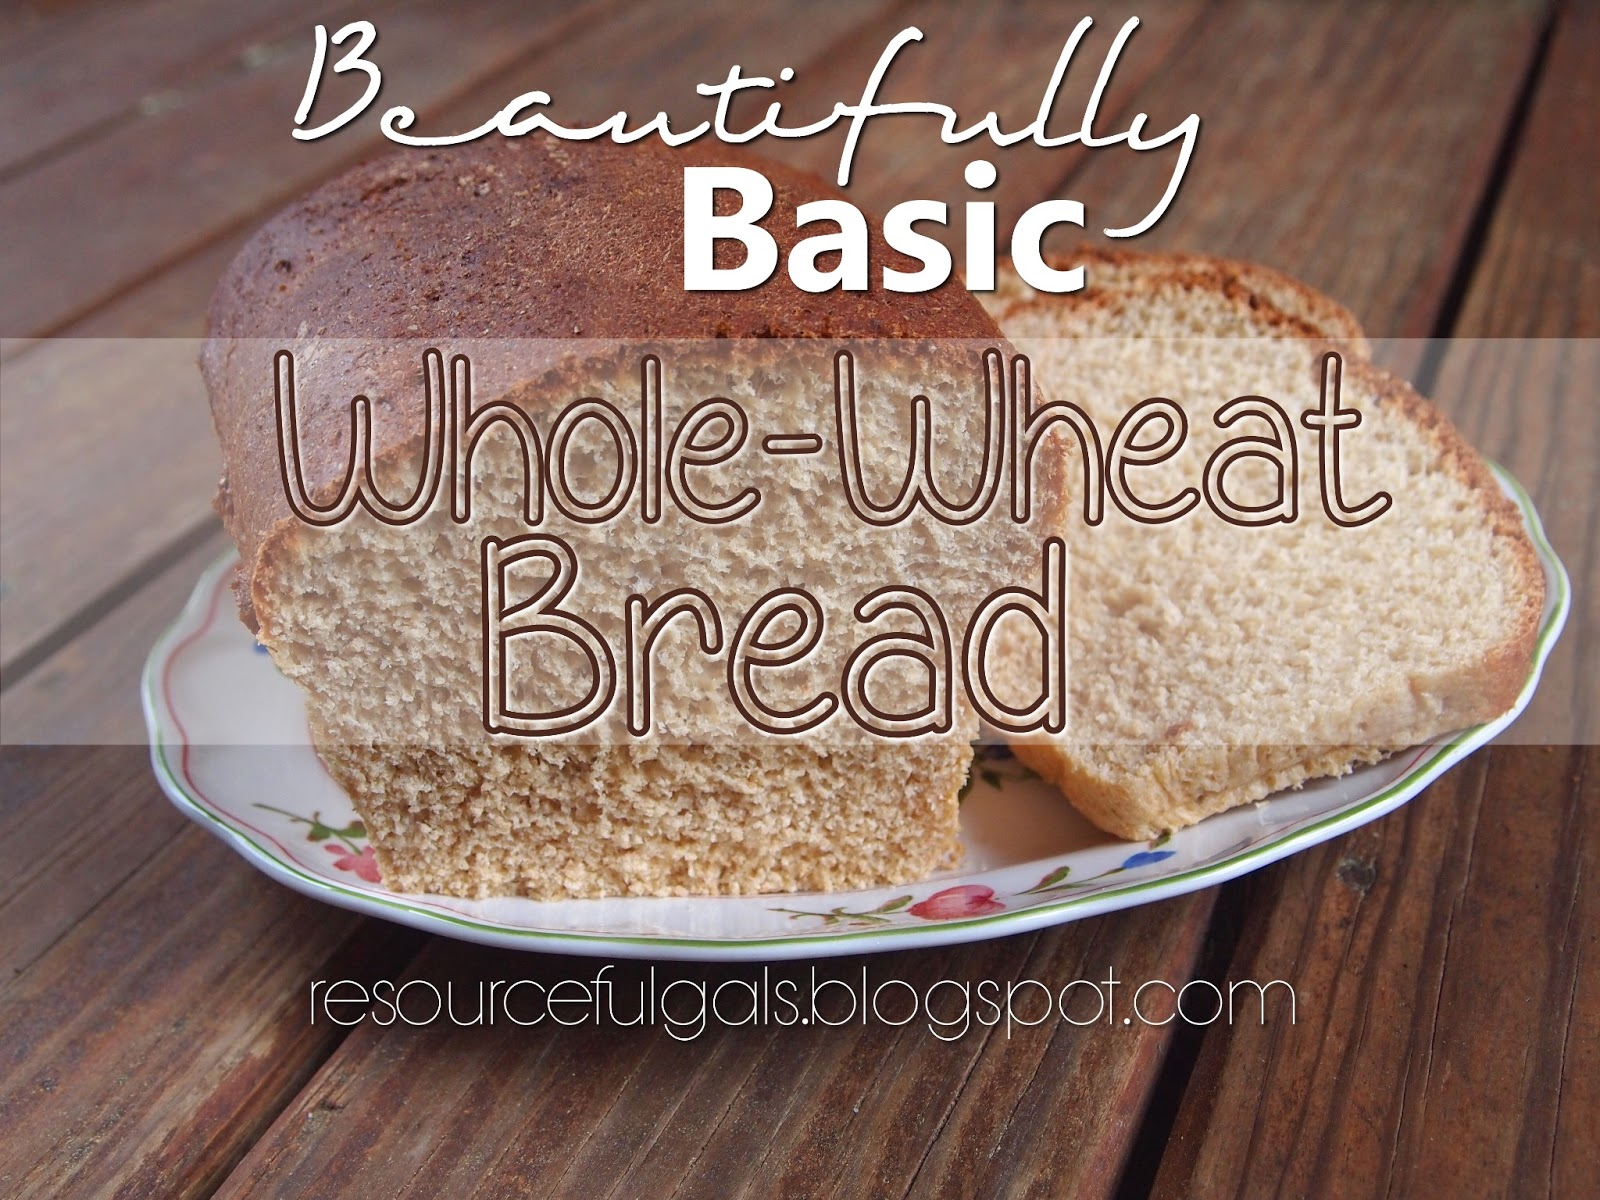 . :) So many of our recipes are based in the Basic Whole Wheat Bread ...